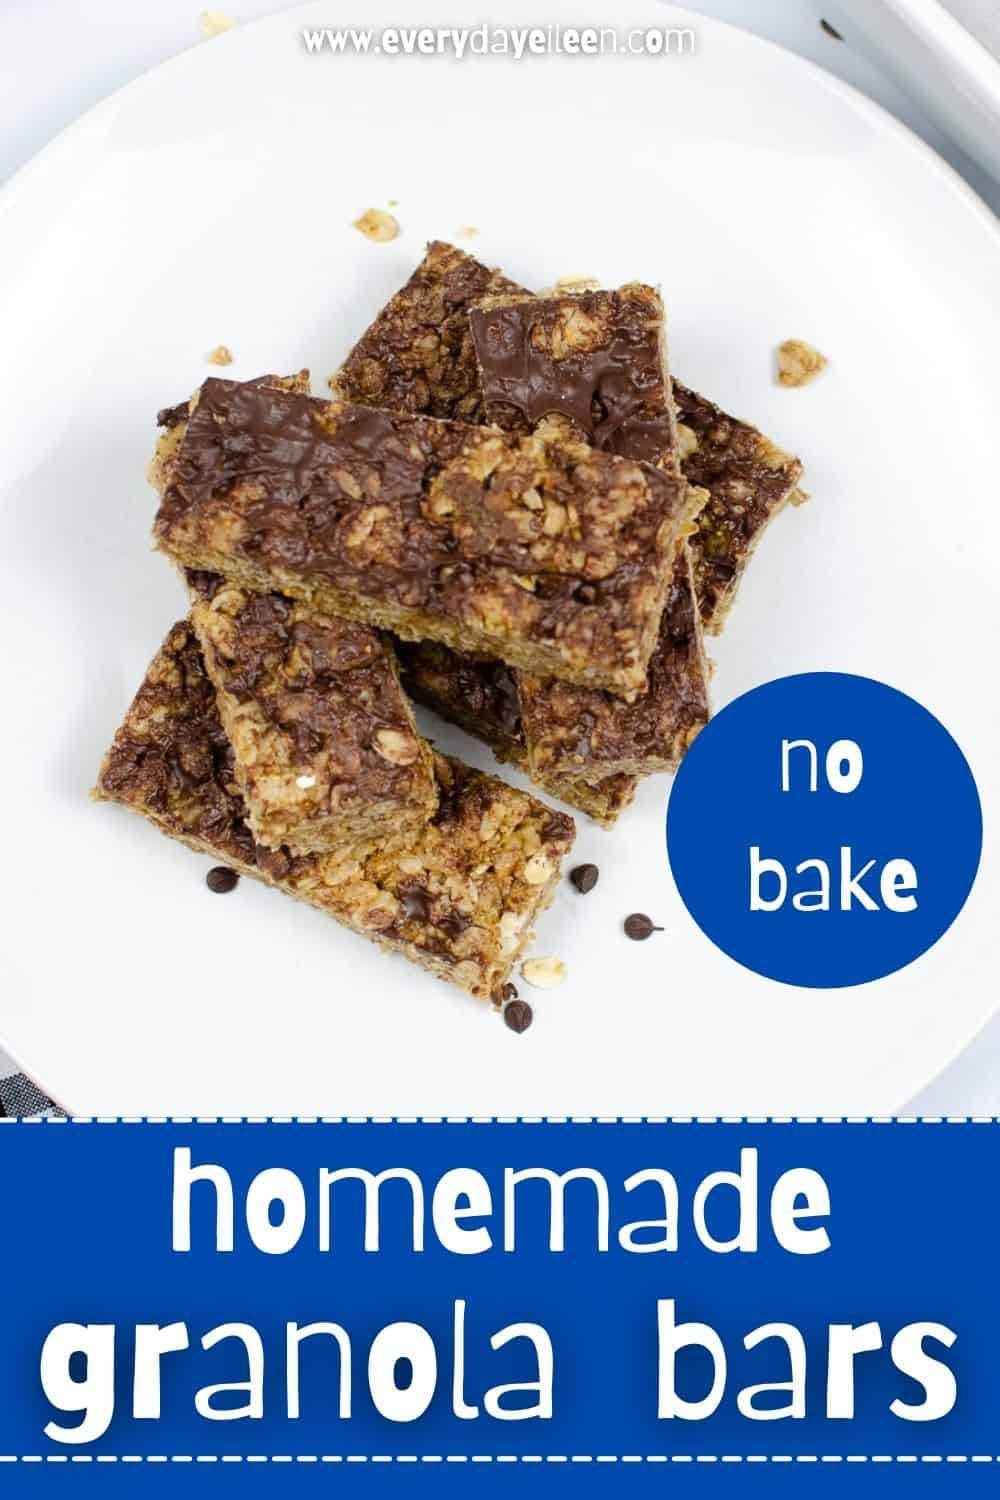 Homemade Granola Bars, are chewy and delicious. Made with rice puffs, peanut or almond butter, and rolled oats. A quick no bake recipe with simple ingredients. From kids to adults, always a hit. #nobakegranolabars #granolabars #everydayeileen via @/everydayeileen/